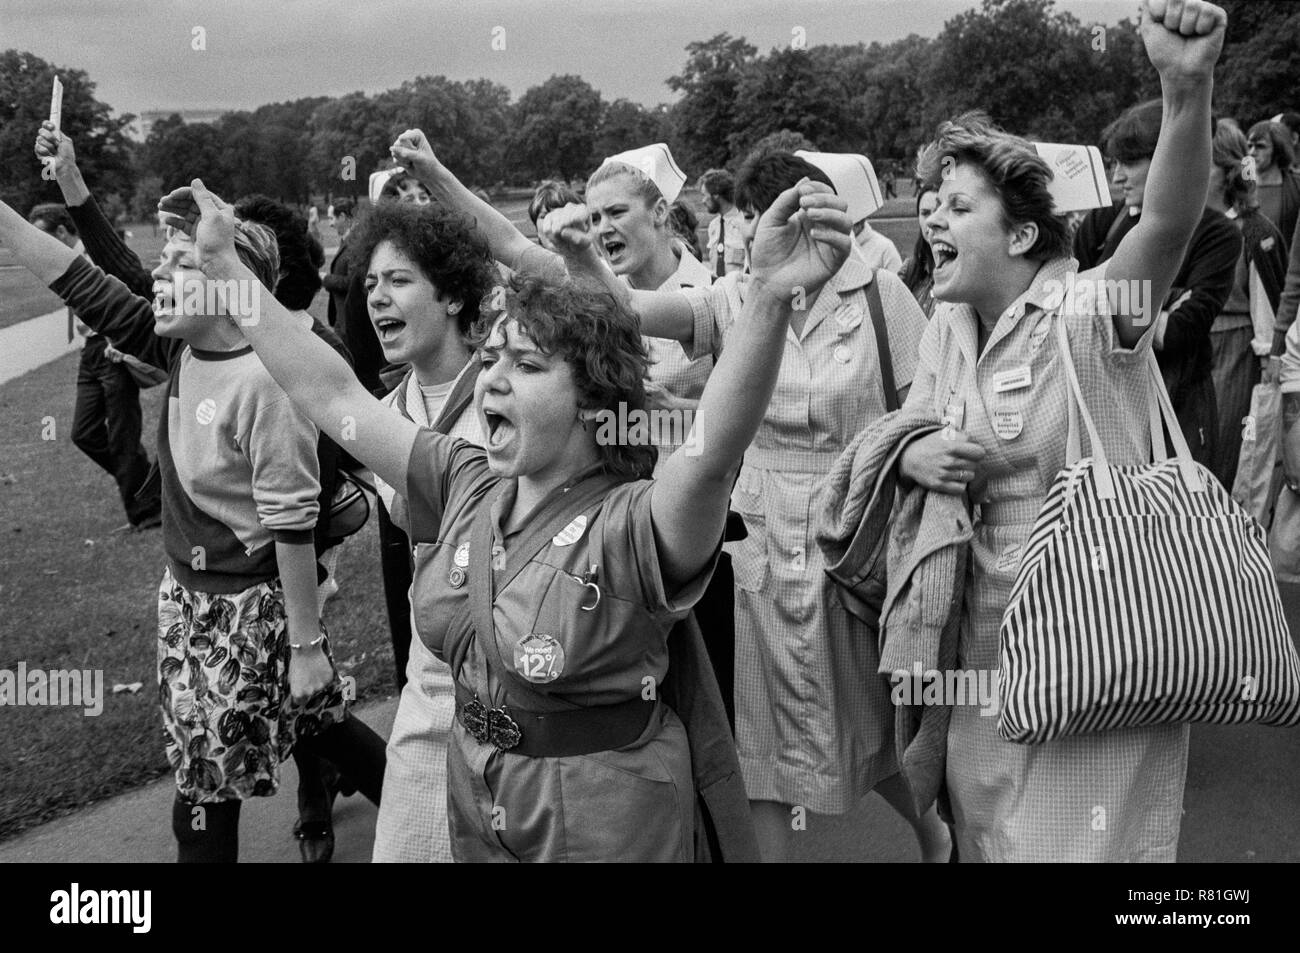 NHS rally on the TUC Day of Action, 22nd September 1982, London - Stock Image